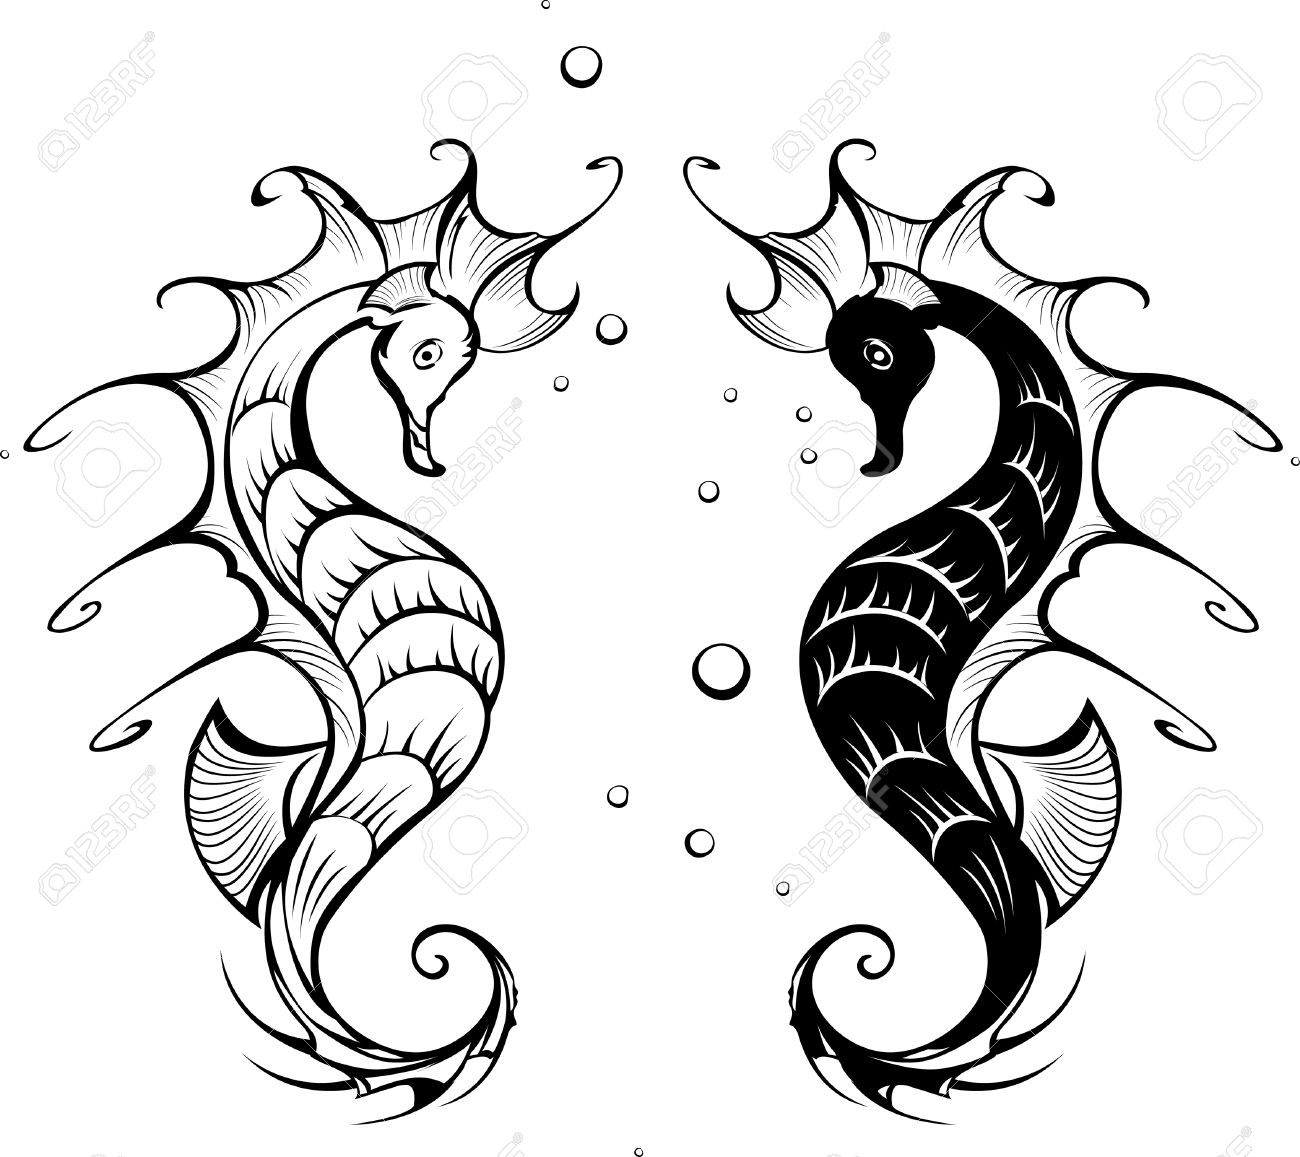 Seahorse Cartoon Drawing